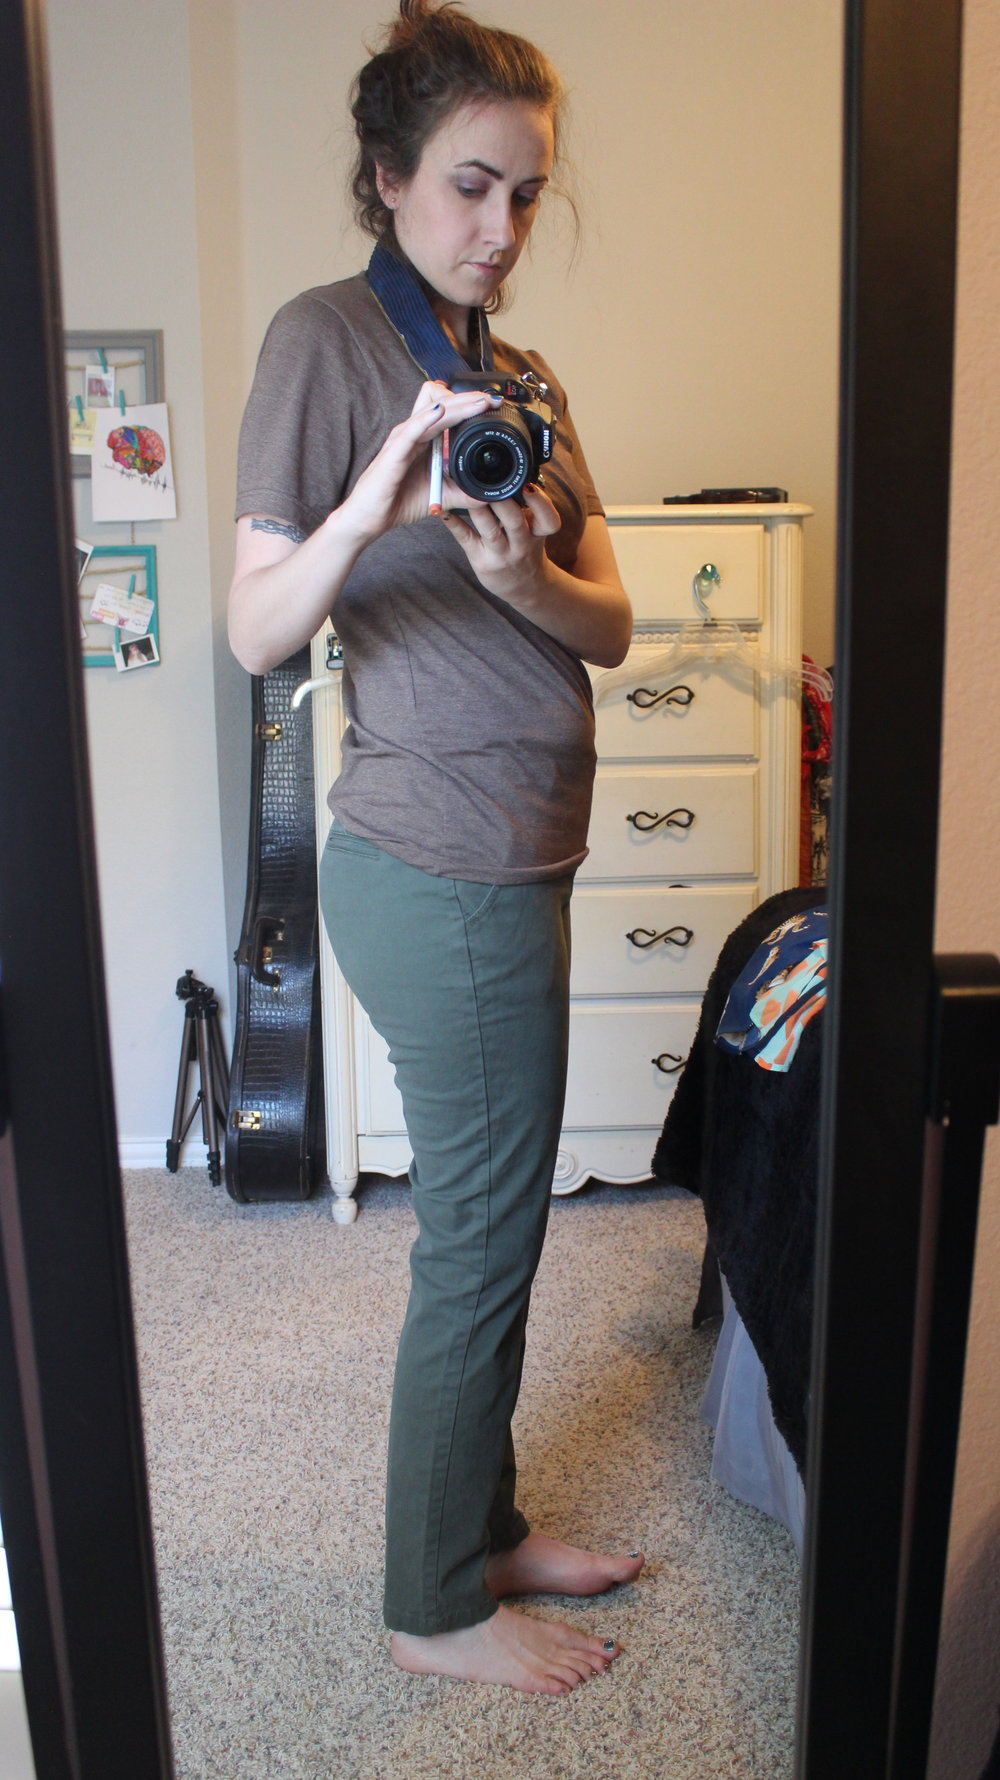 - I started by picking up these pair of olive green skinny pants at a thrift store by my house. Very cheap (~$2) and of course, eco-friendly.